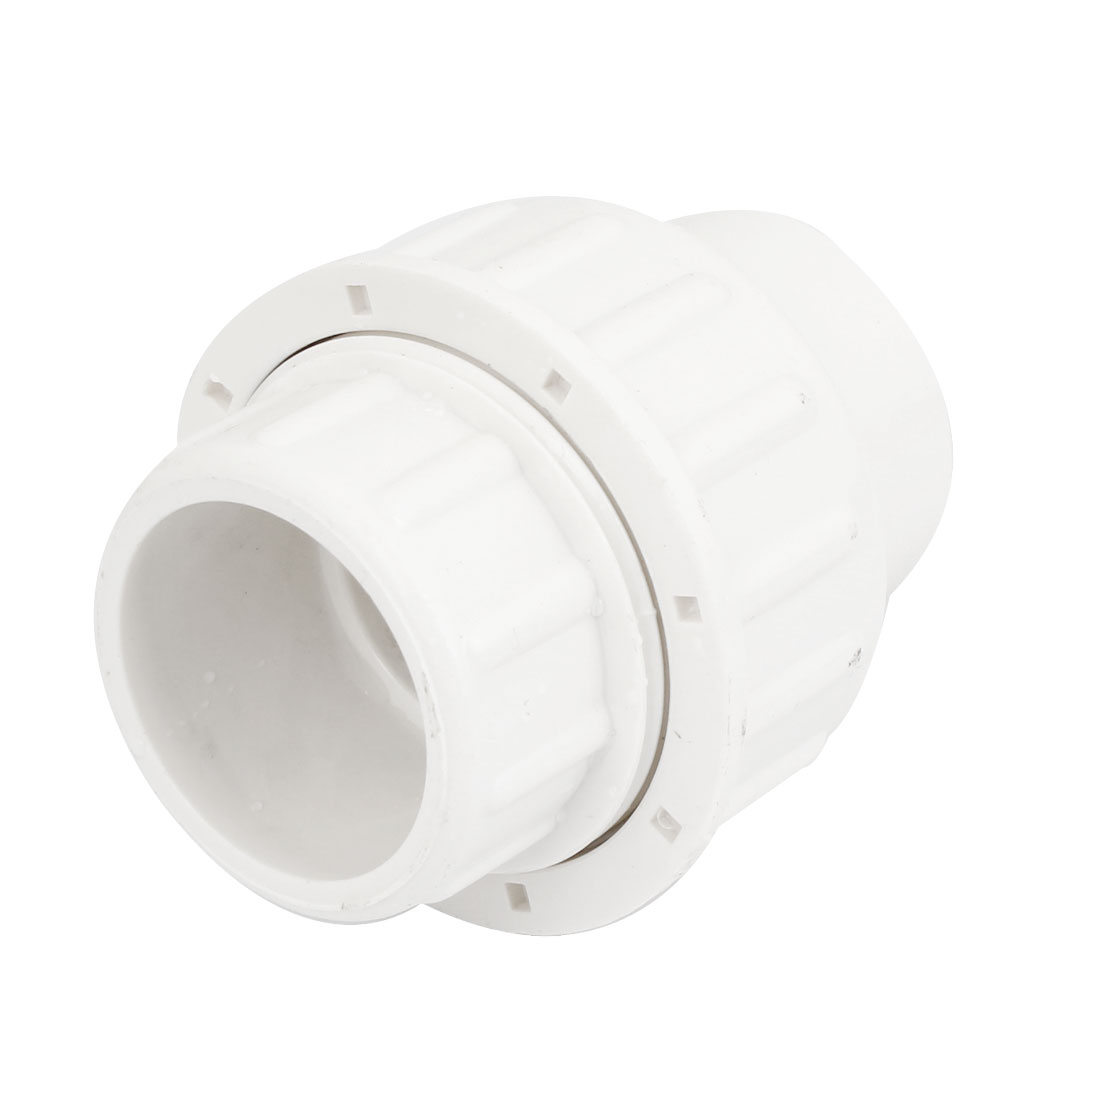 White PVC Plastic Pipe Adapter Connector Coupler 32mm x 32mm for Water Supply